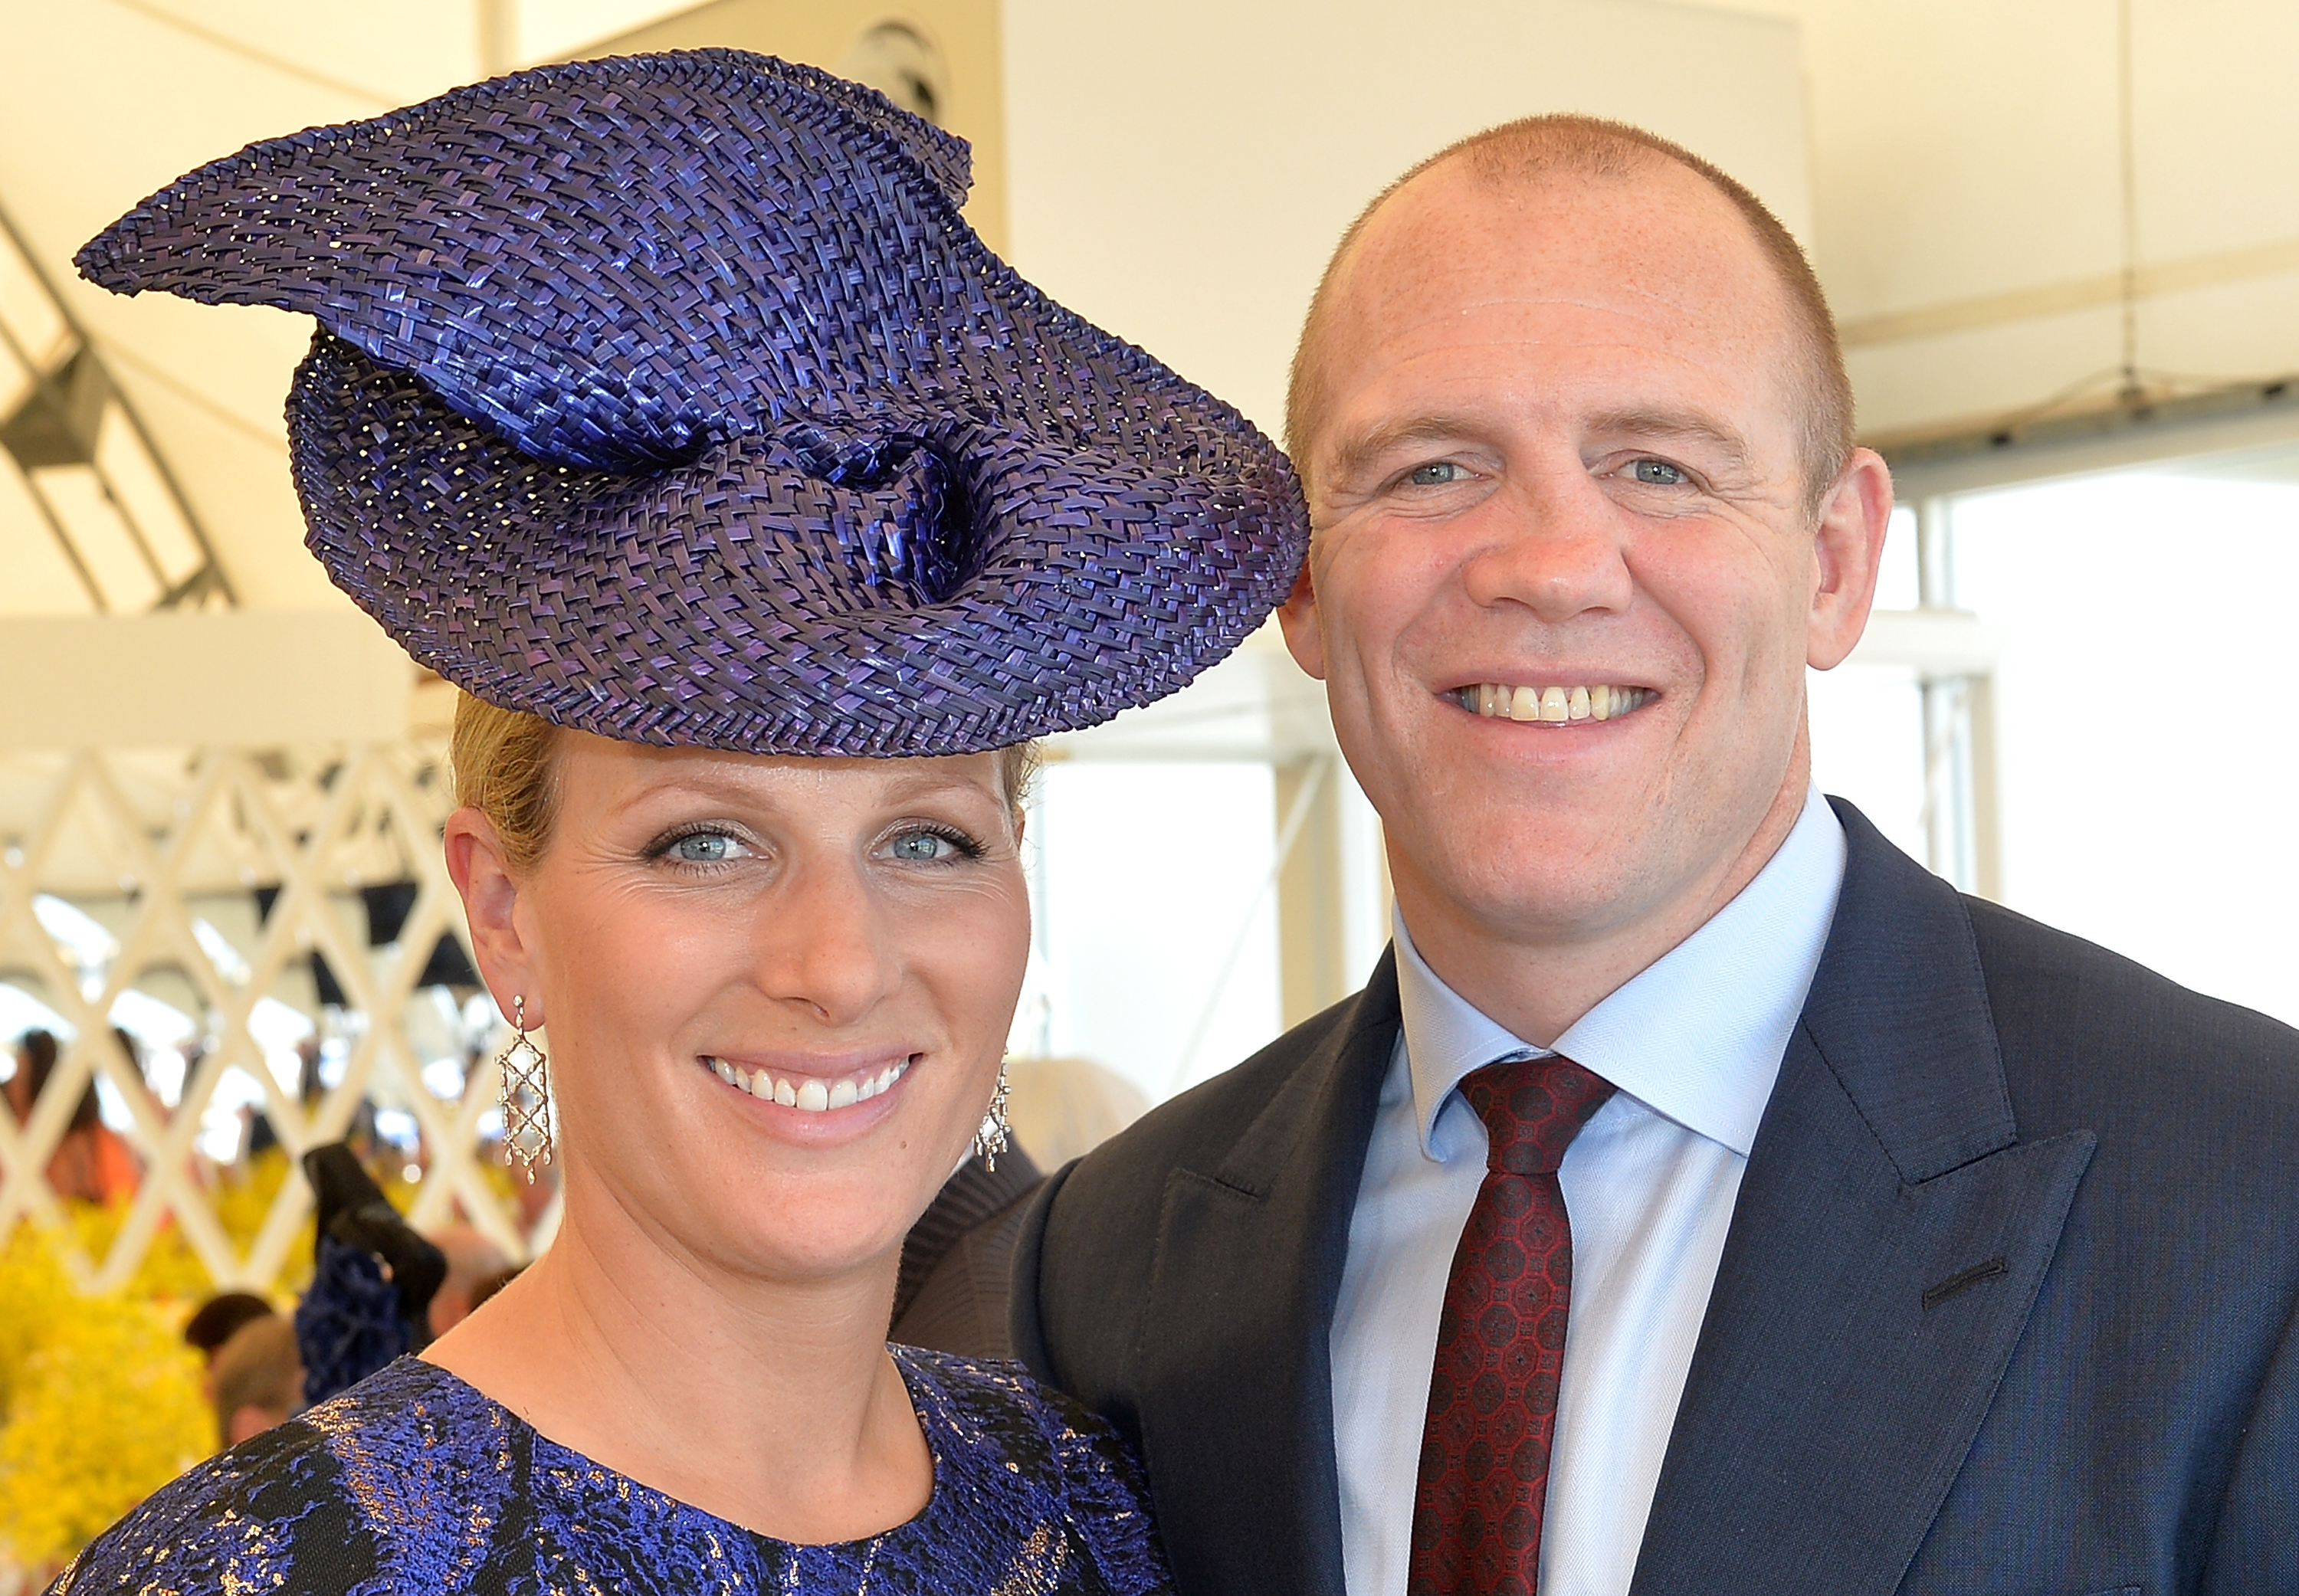 Zara Phillips and Mike Tindall attend the Magic Millions Raceday at Gold Coast Turf Club on January 9, 2016 in Gold Coast, Australia.